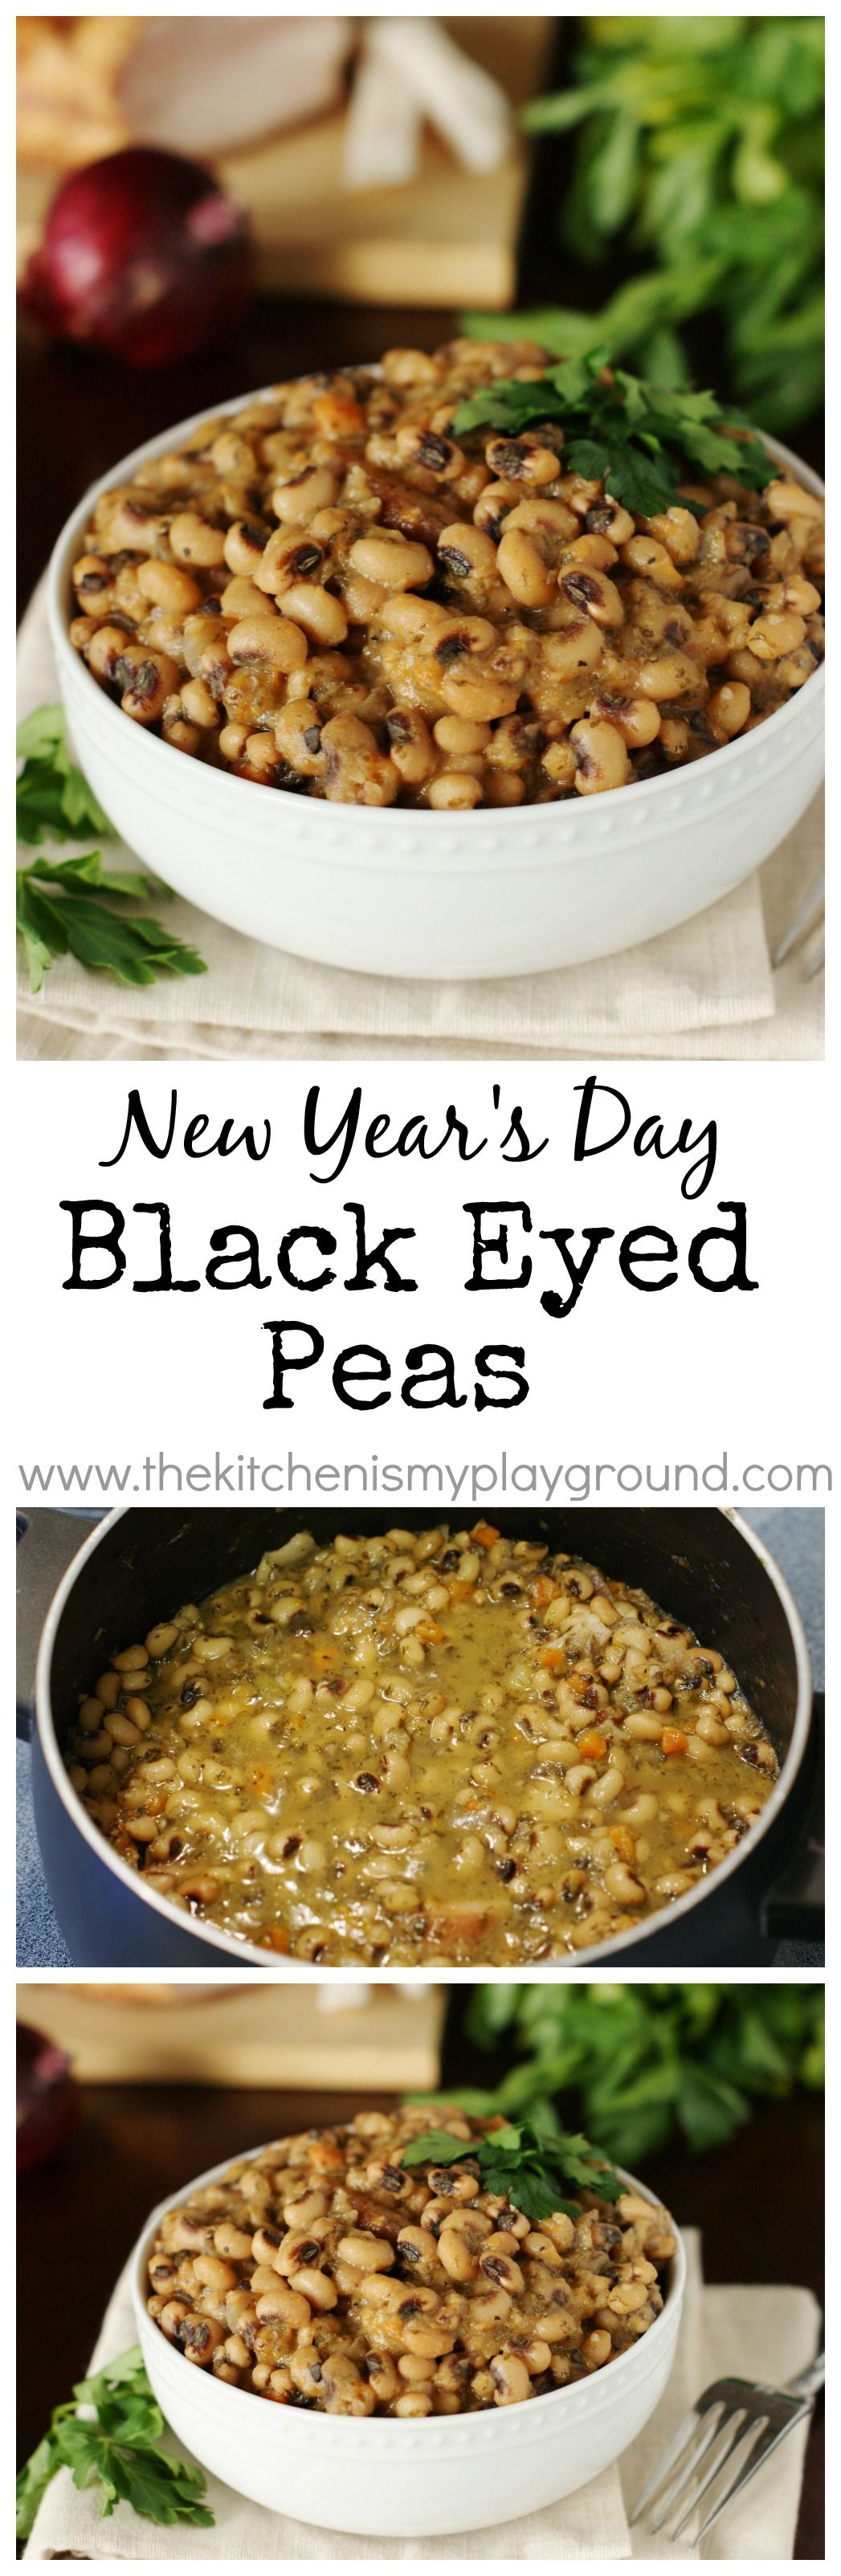 New Years Day Black Eyed Peas www.thekitchenismyplayground